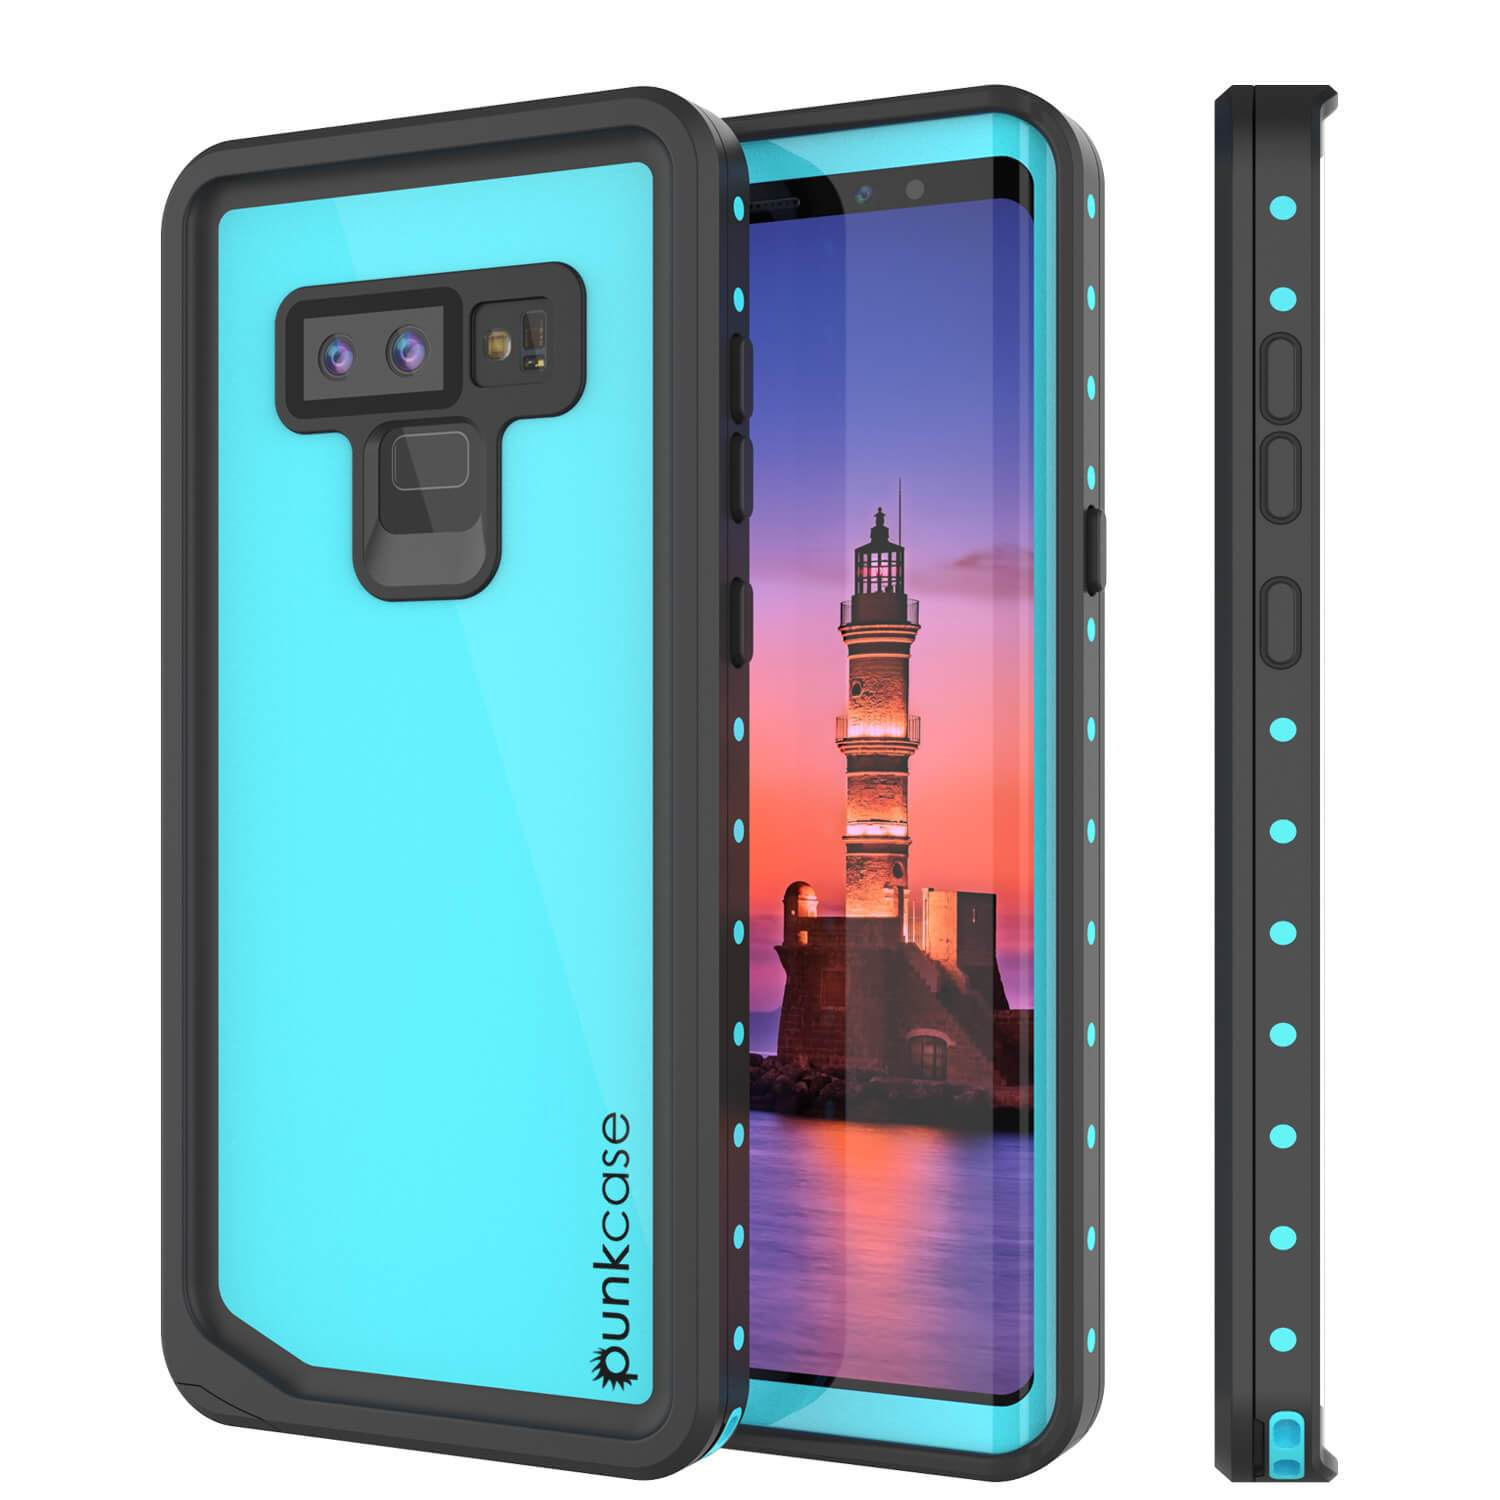 Galaxy Note 9 Waterproof Case PunkCase StudStar Teal Thin 6.6ft Underwater Shock/Snow Proof